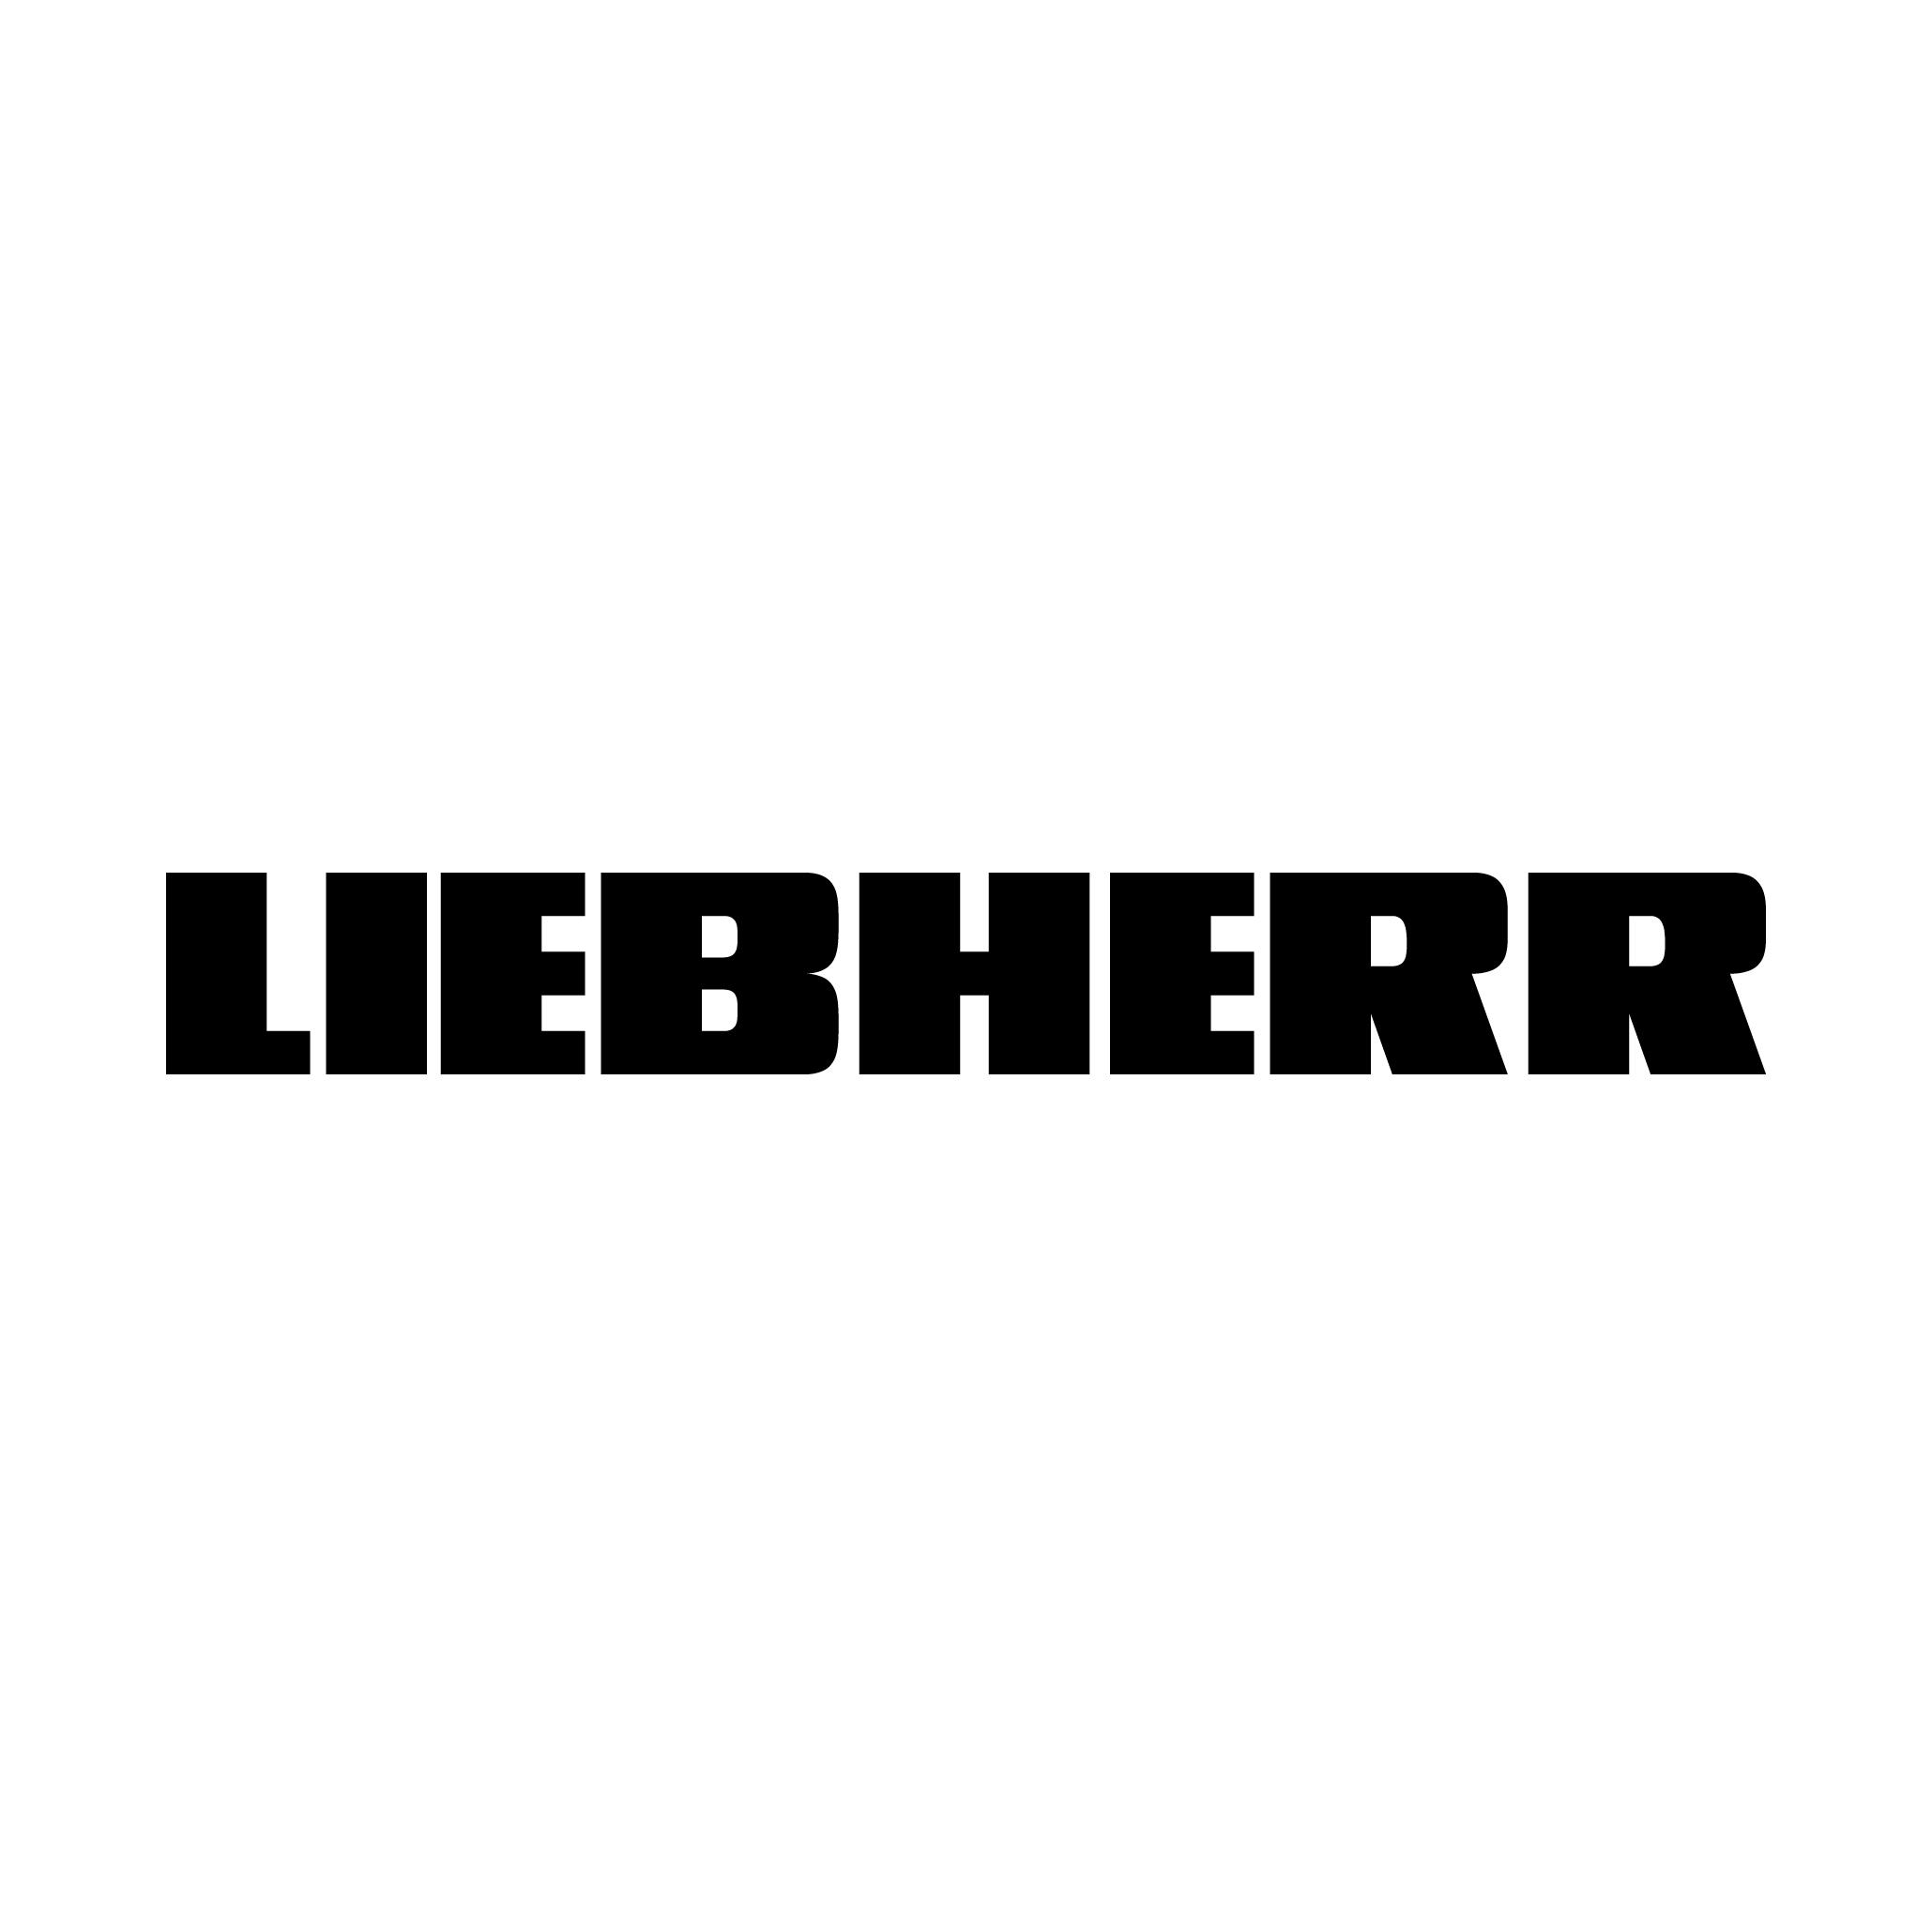 Liebherr copy